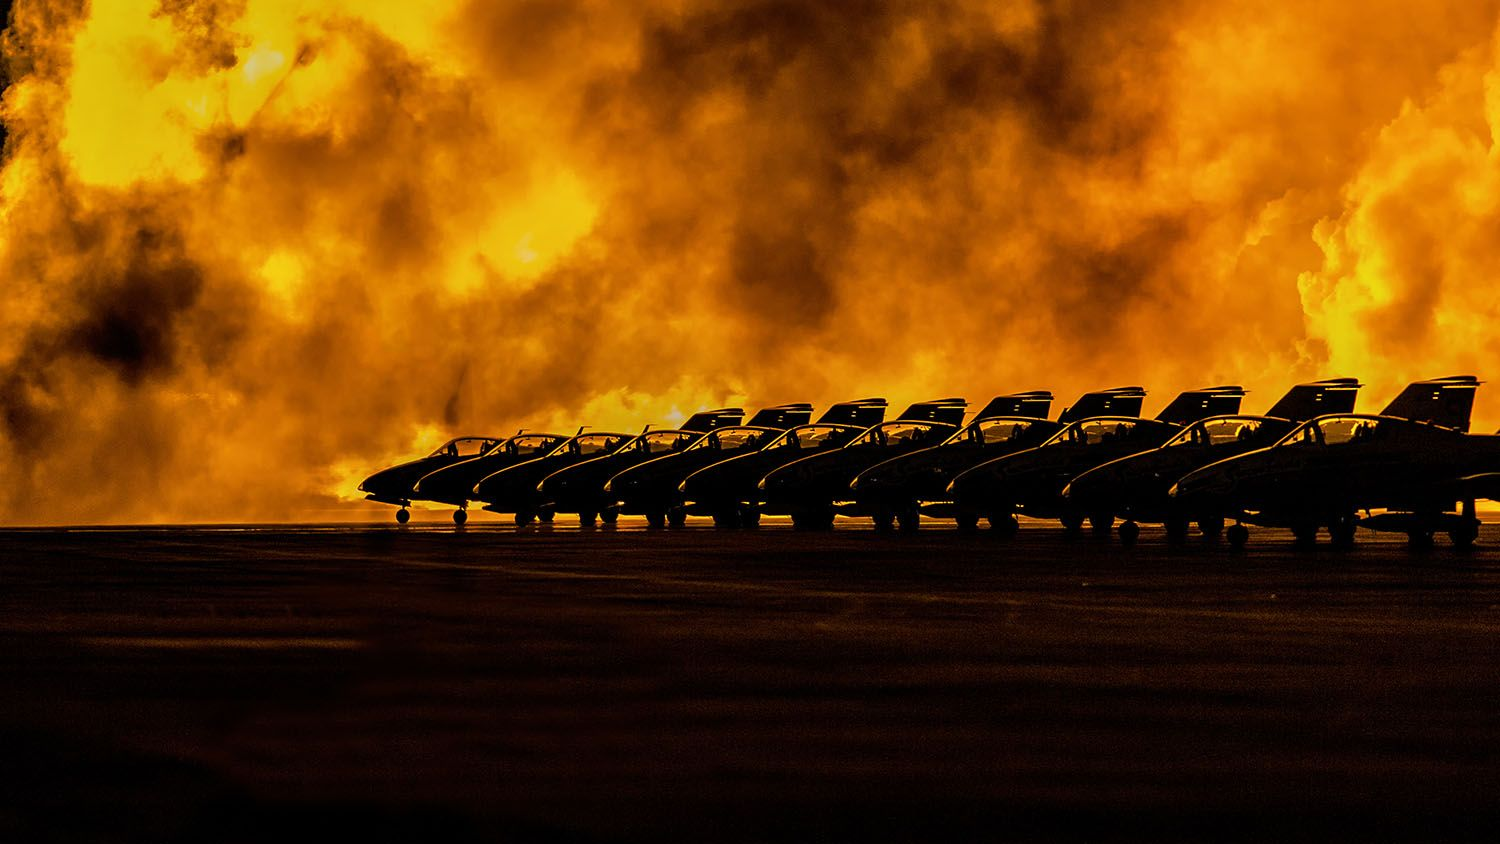 Nighttime At The Airshow by Wayne Domkowski